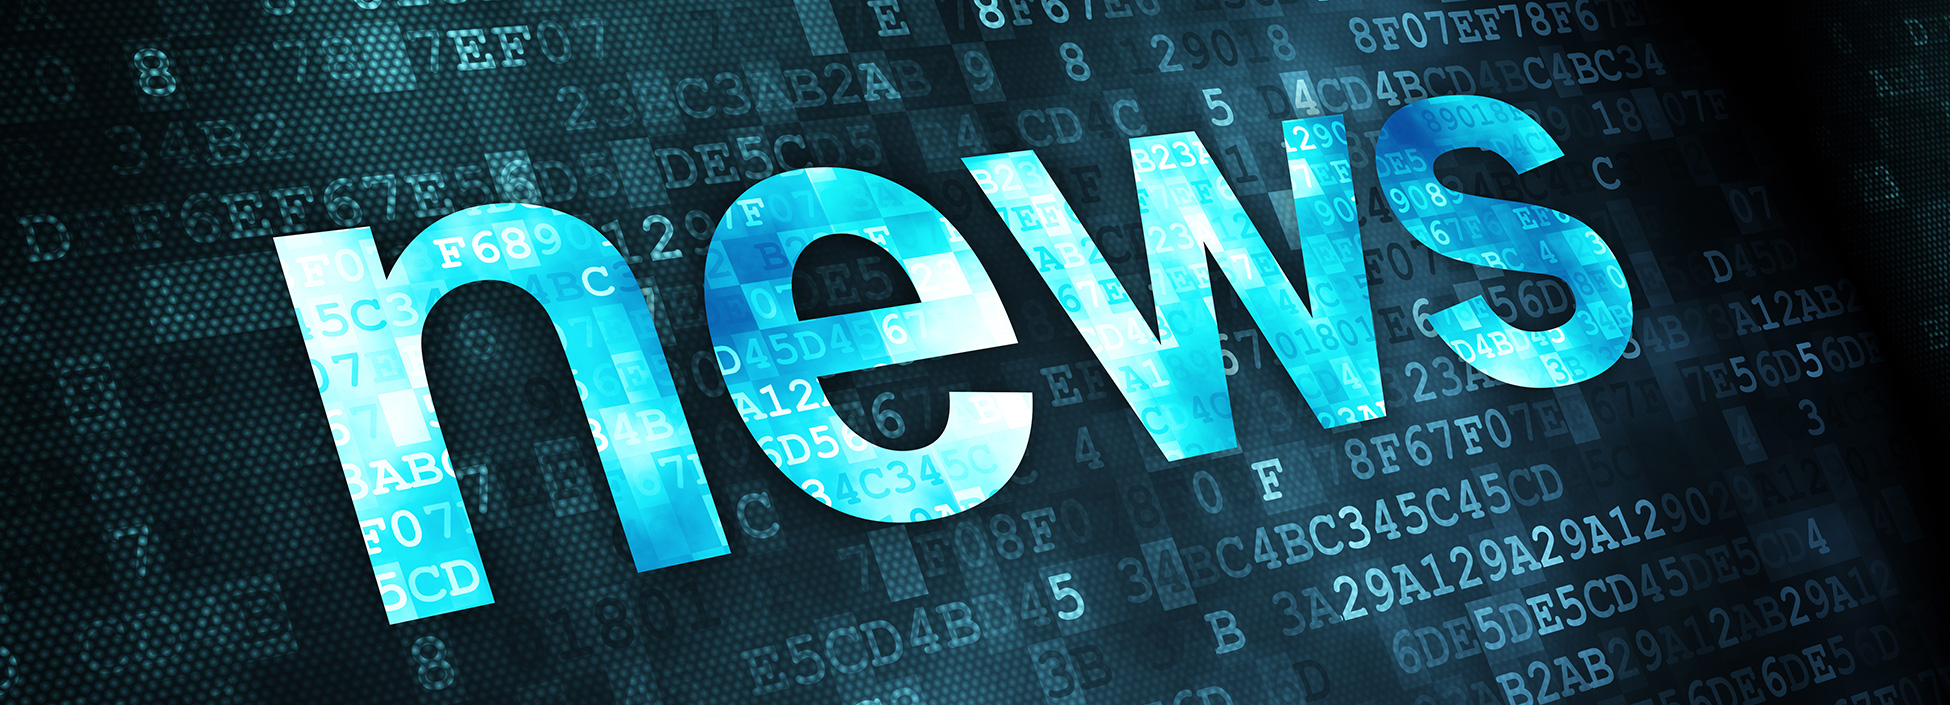 Current news and press releases for TDG Technologies, LLC.